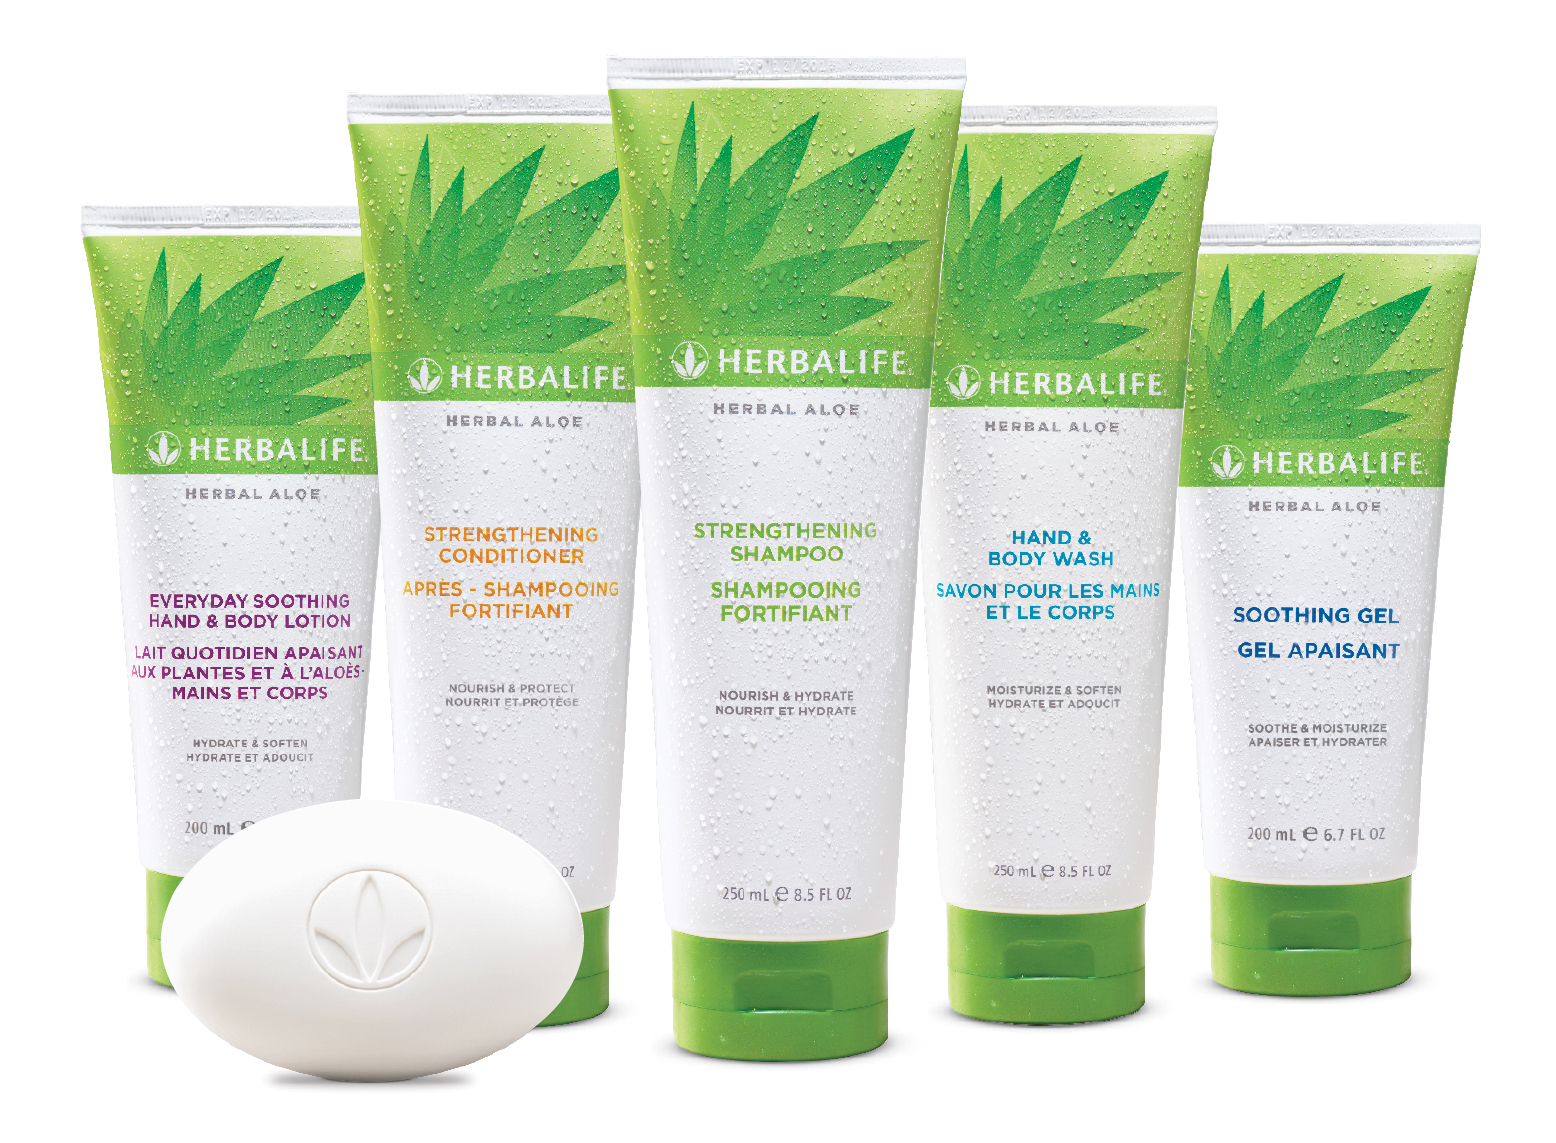 Herbal Aloe Strengthening Shampoo And Conditioner Blog